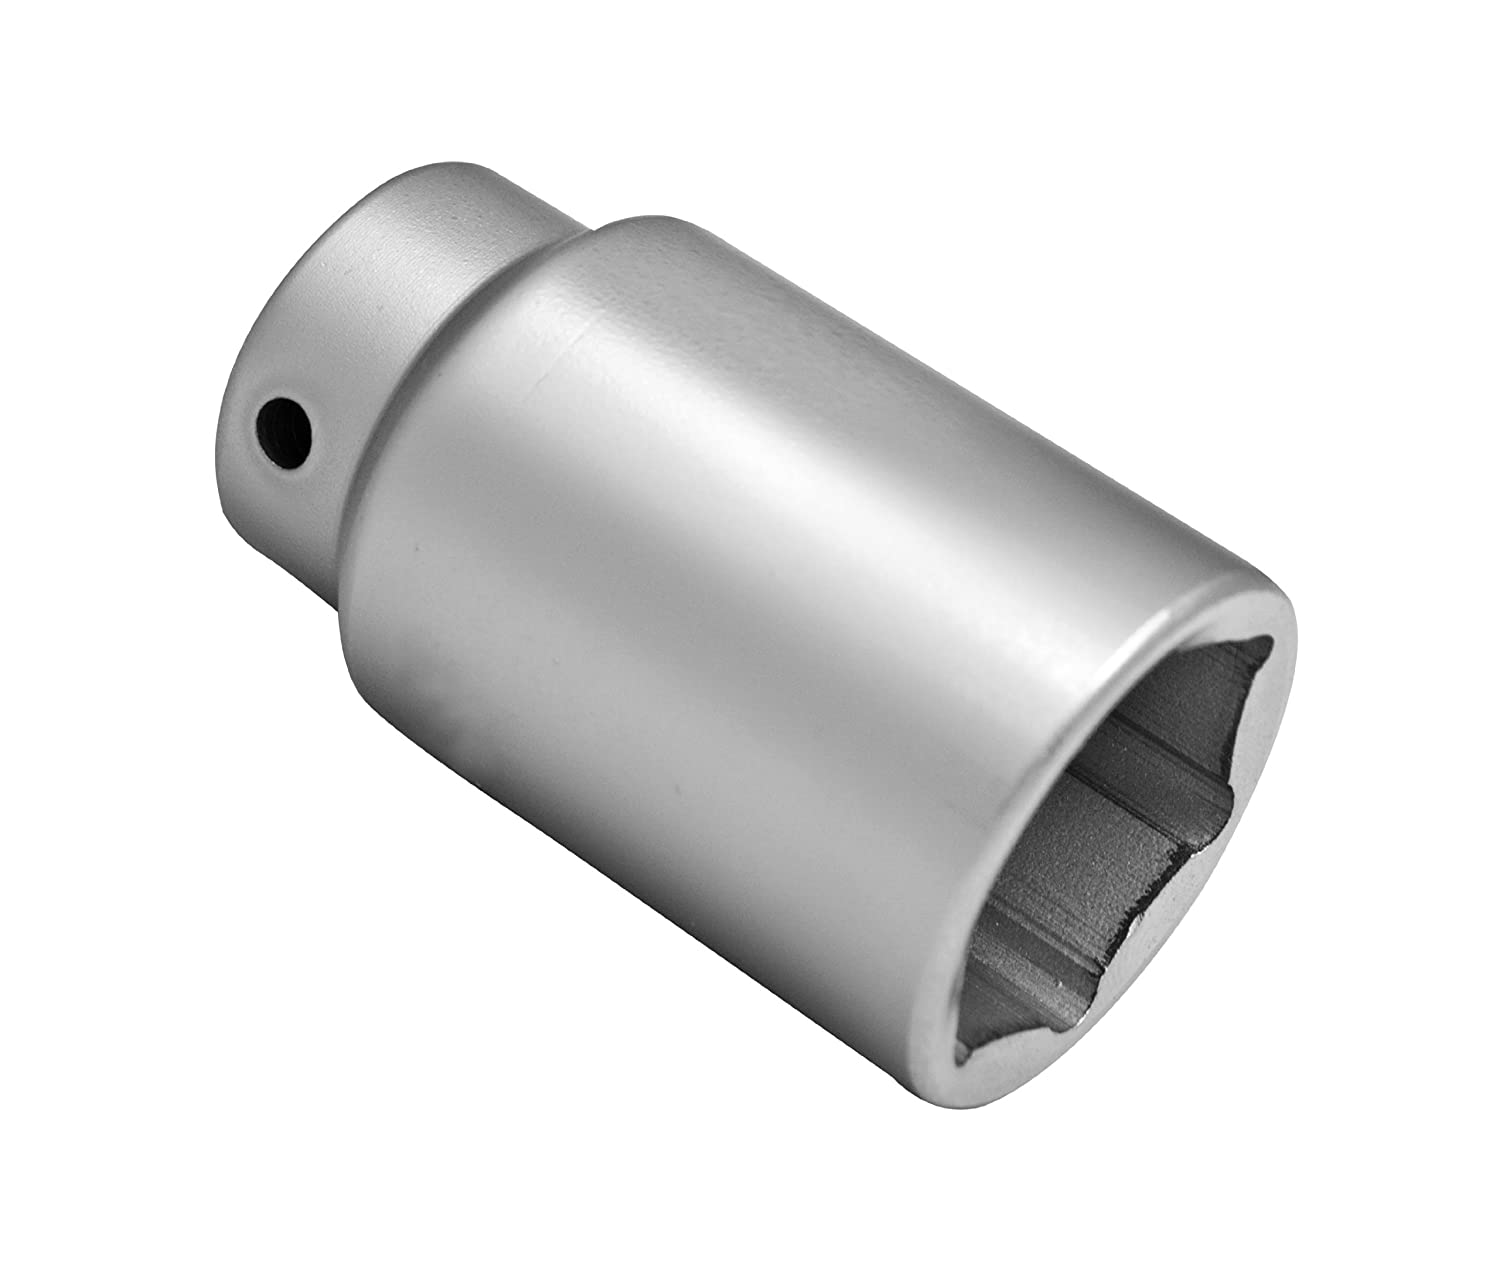 OEMTOOLS 27050 1//2 Inch Drive 34mm Axle Nut Socket